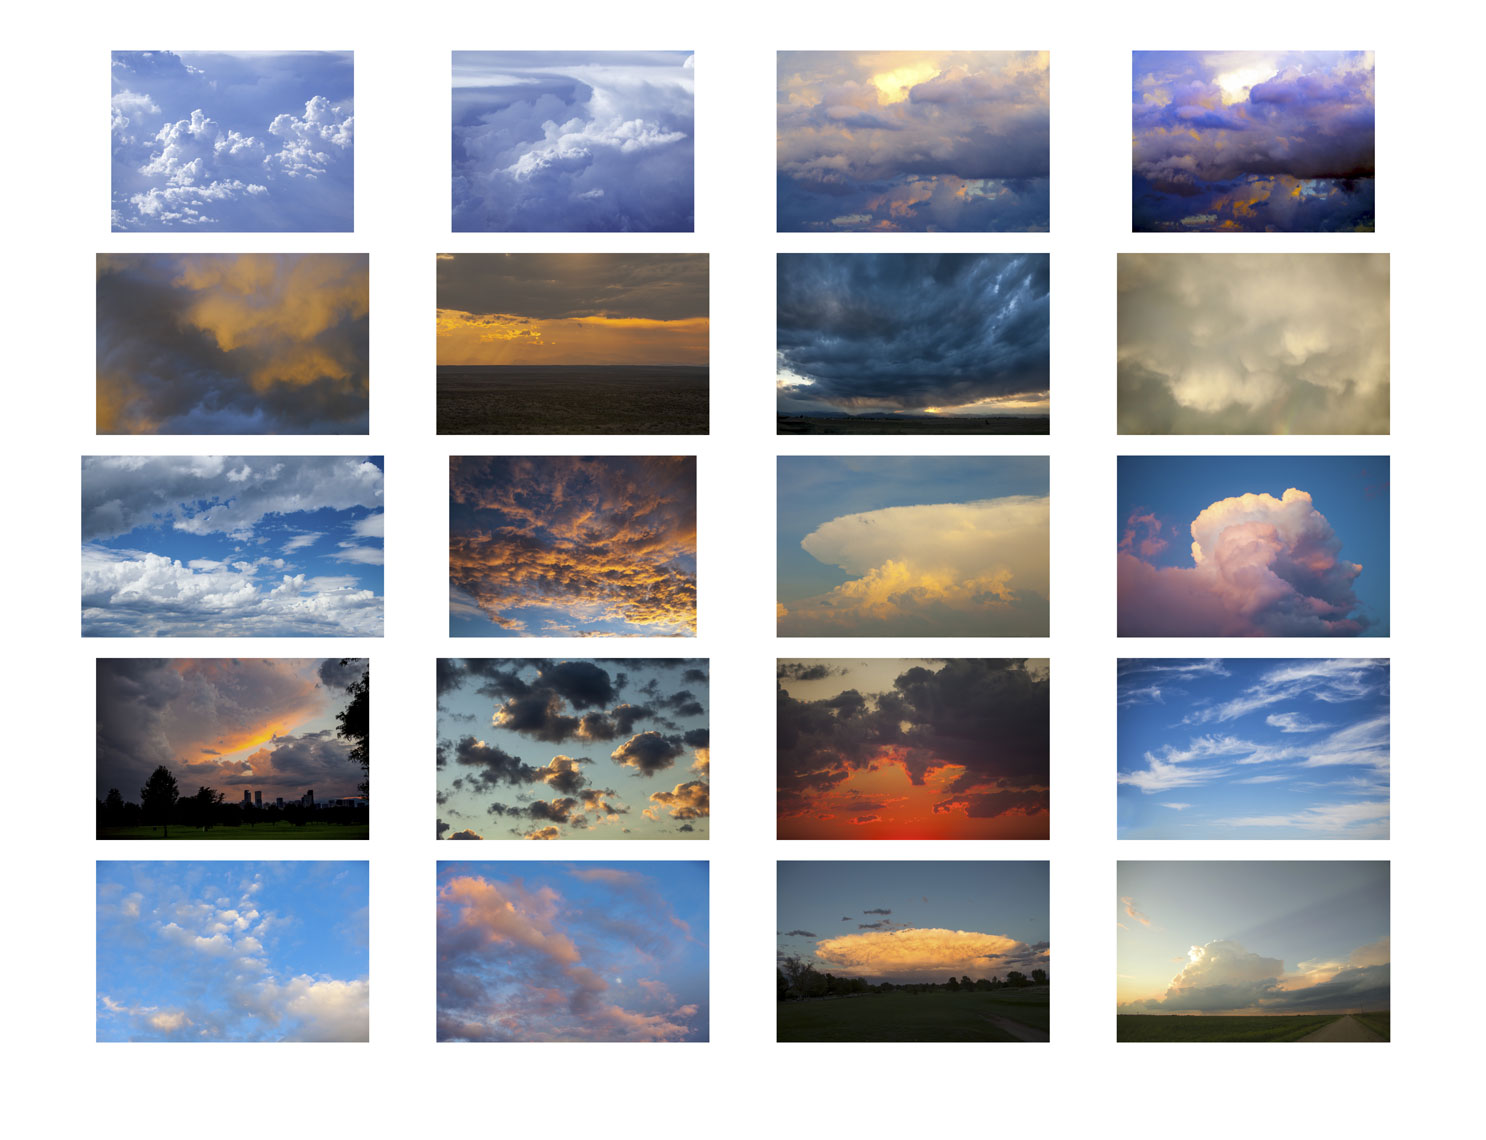 025_Clouds_Typology